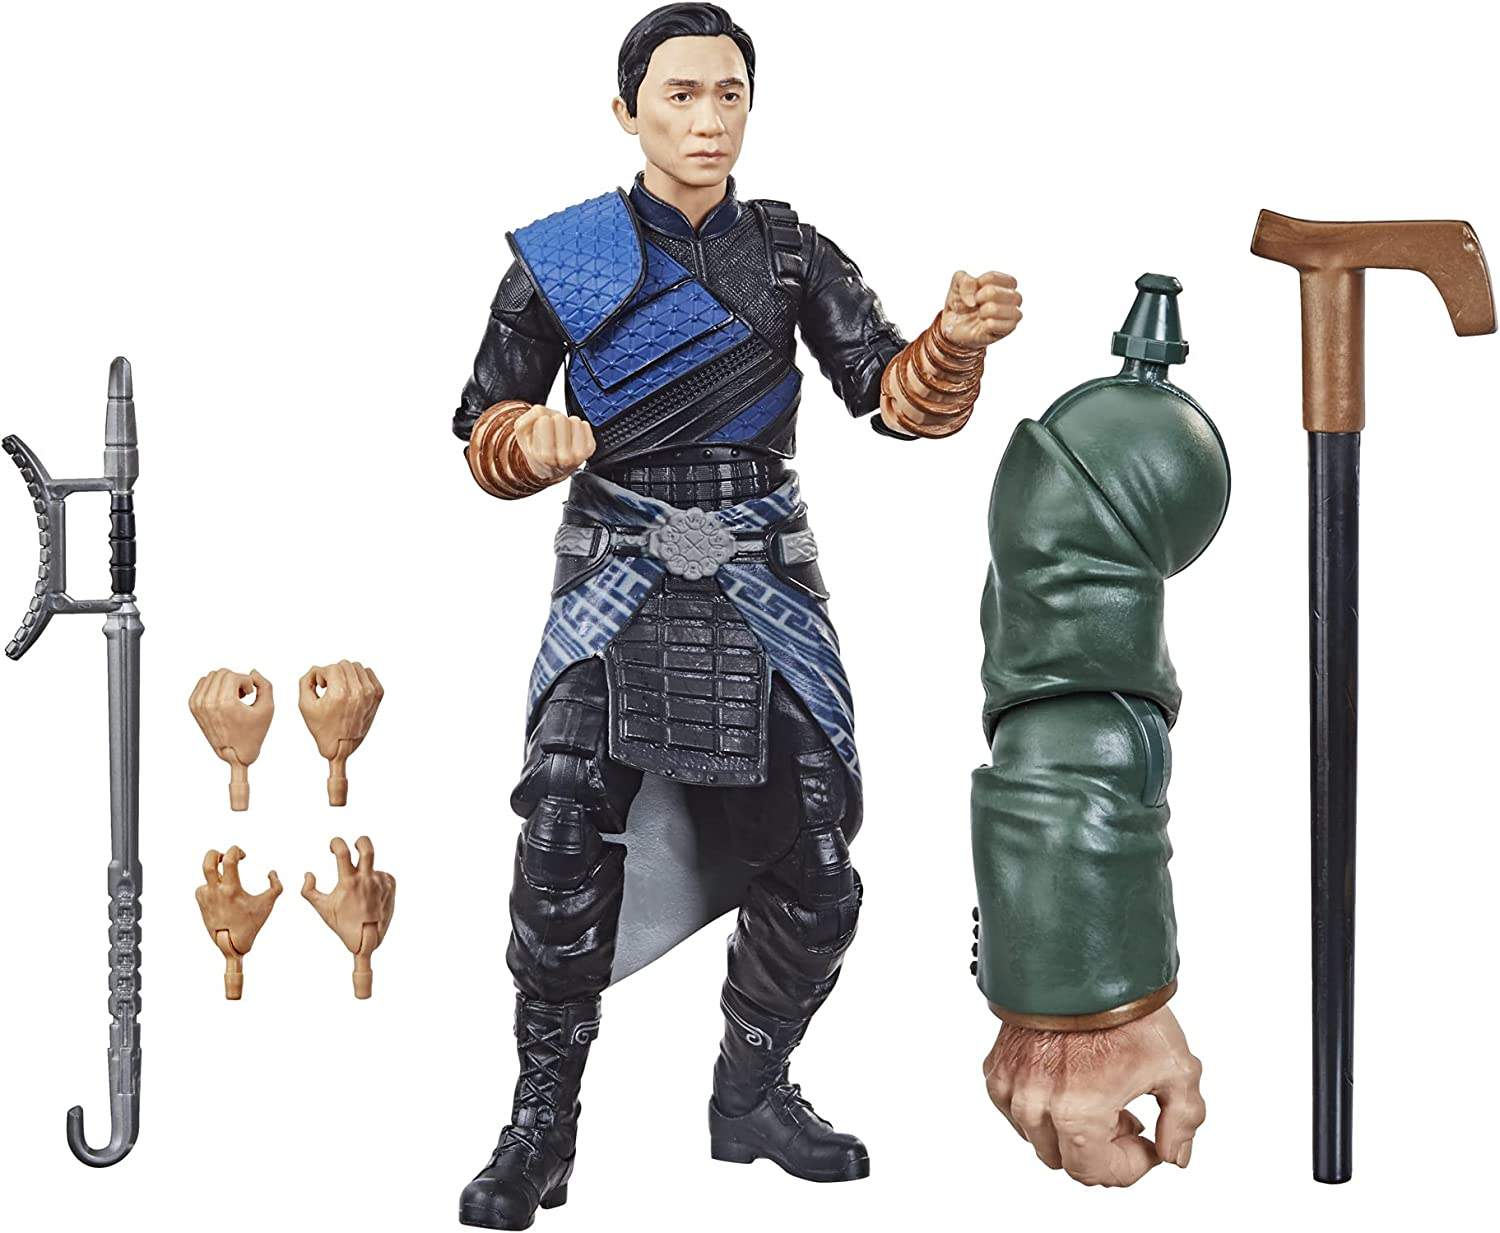 Marvel Hasbro Legends Series Shang-Chi and The Legend of The Ten Rings 6-inch Collectible Wenwu Action Figure Toy for Age 4 and Up